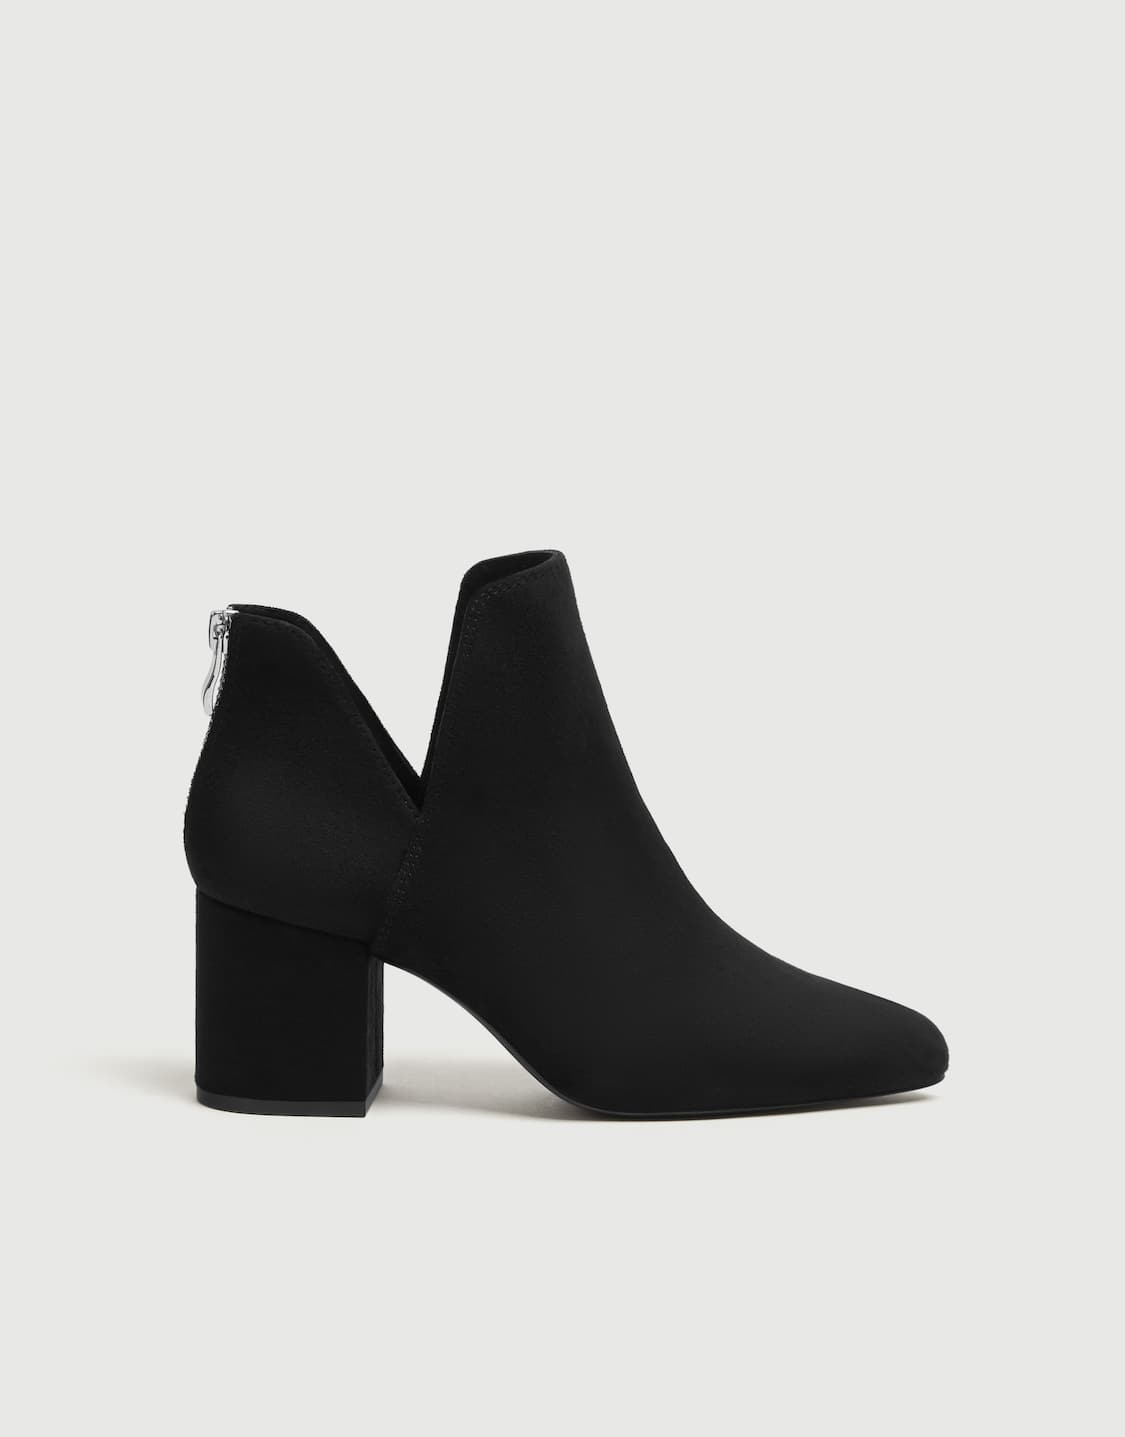 eb4579912d8 Black cut-out high-heel ankle boots - PULL&BEAR